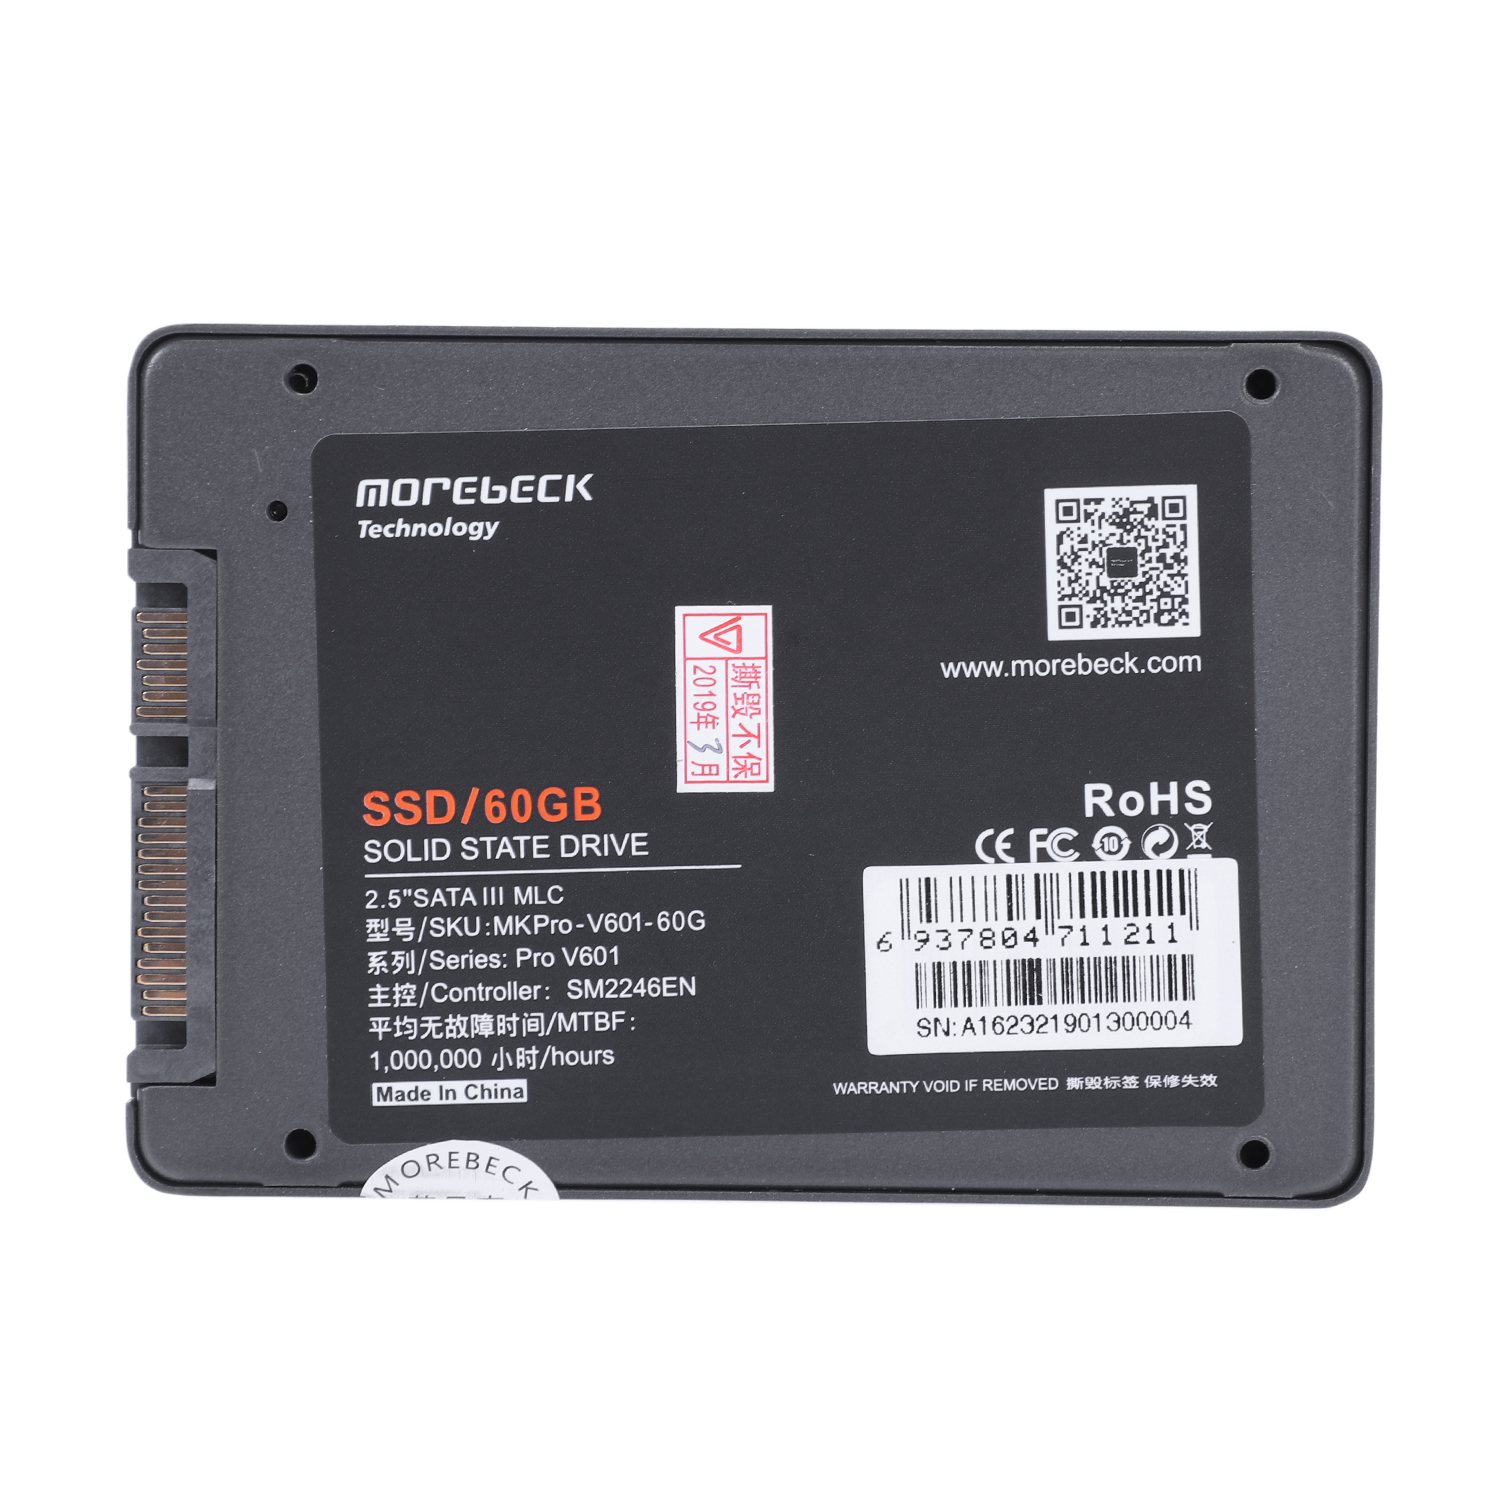 Morebeck Ssd 2.5 Inch Sata3 Aluminum Shell Internal Solid State Drive For Pc,Laptop